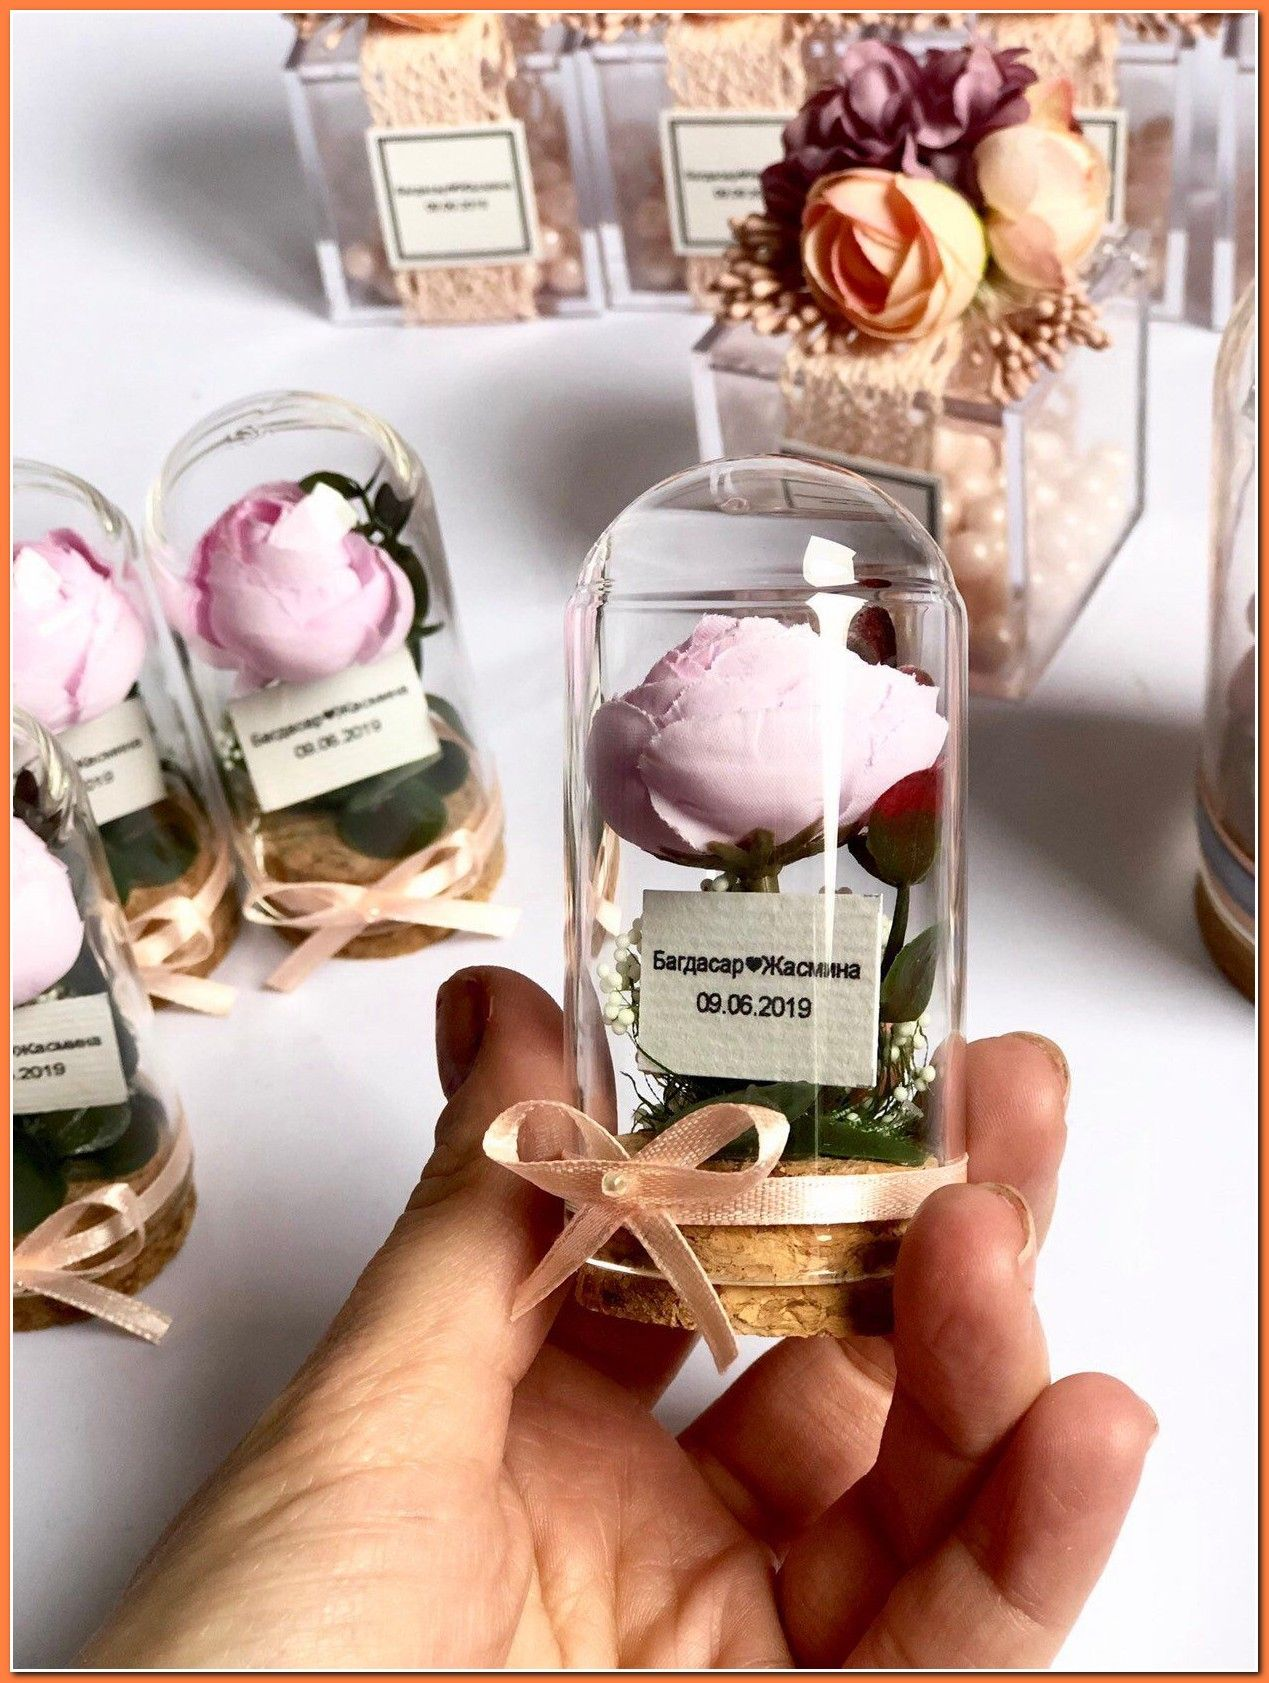 Unique Wedding Favors To Fit Any Budget Whether You Re Looking For Extravagant Or Cheap Wedd In 2020 Wedding Favors For Guests Diy Wedding Favors Bridal Shower Favors